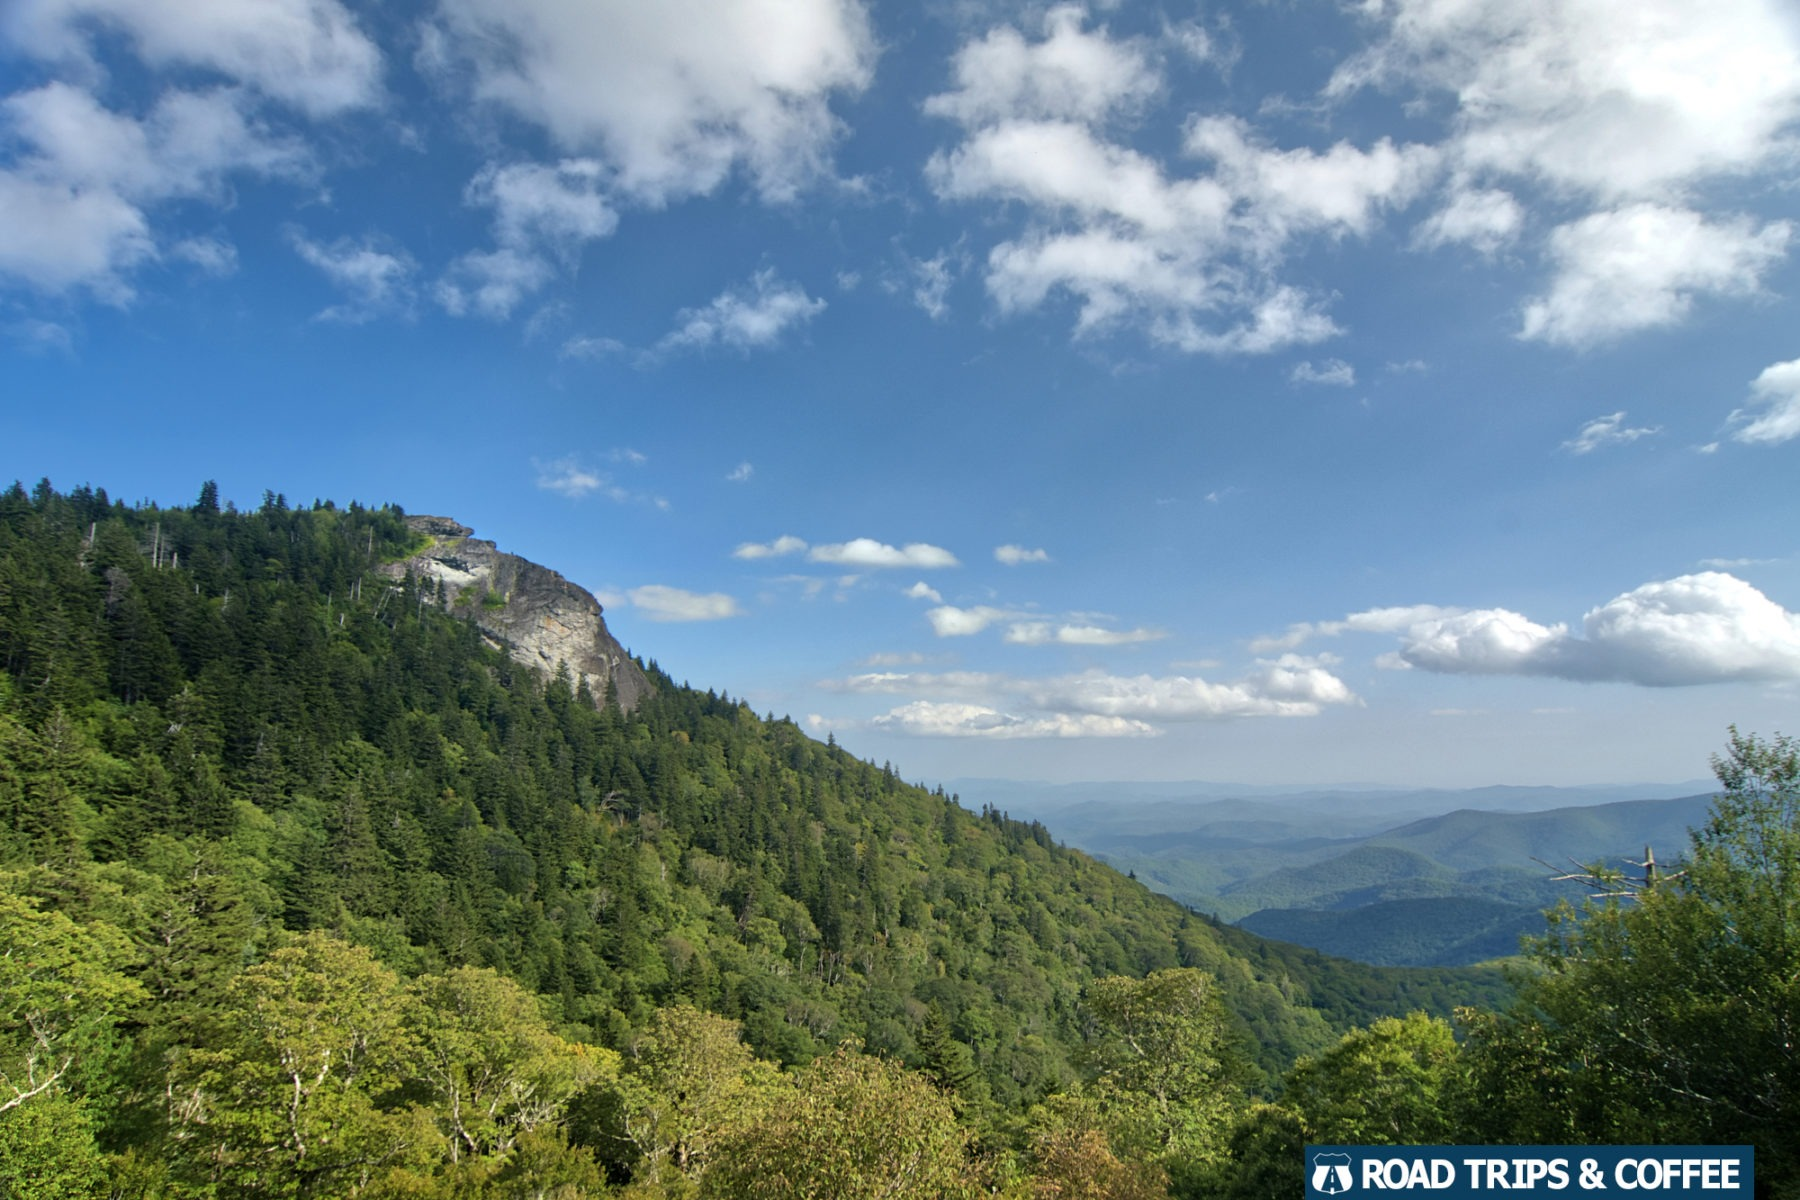 View of Devil's Courthouse on the Blue Ridge Parkway in North Carolina